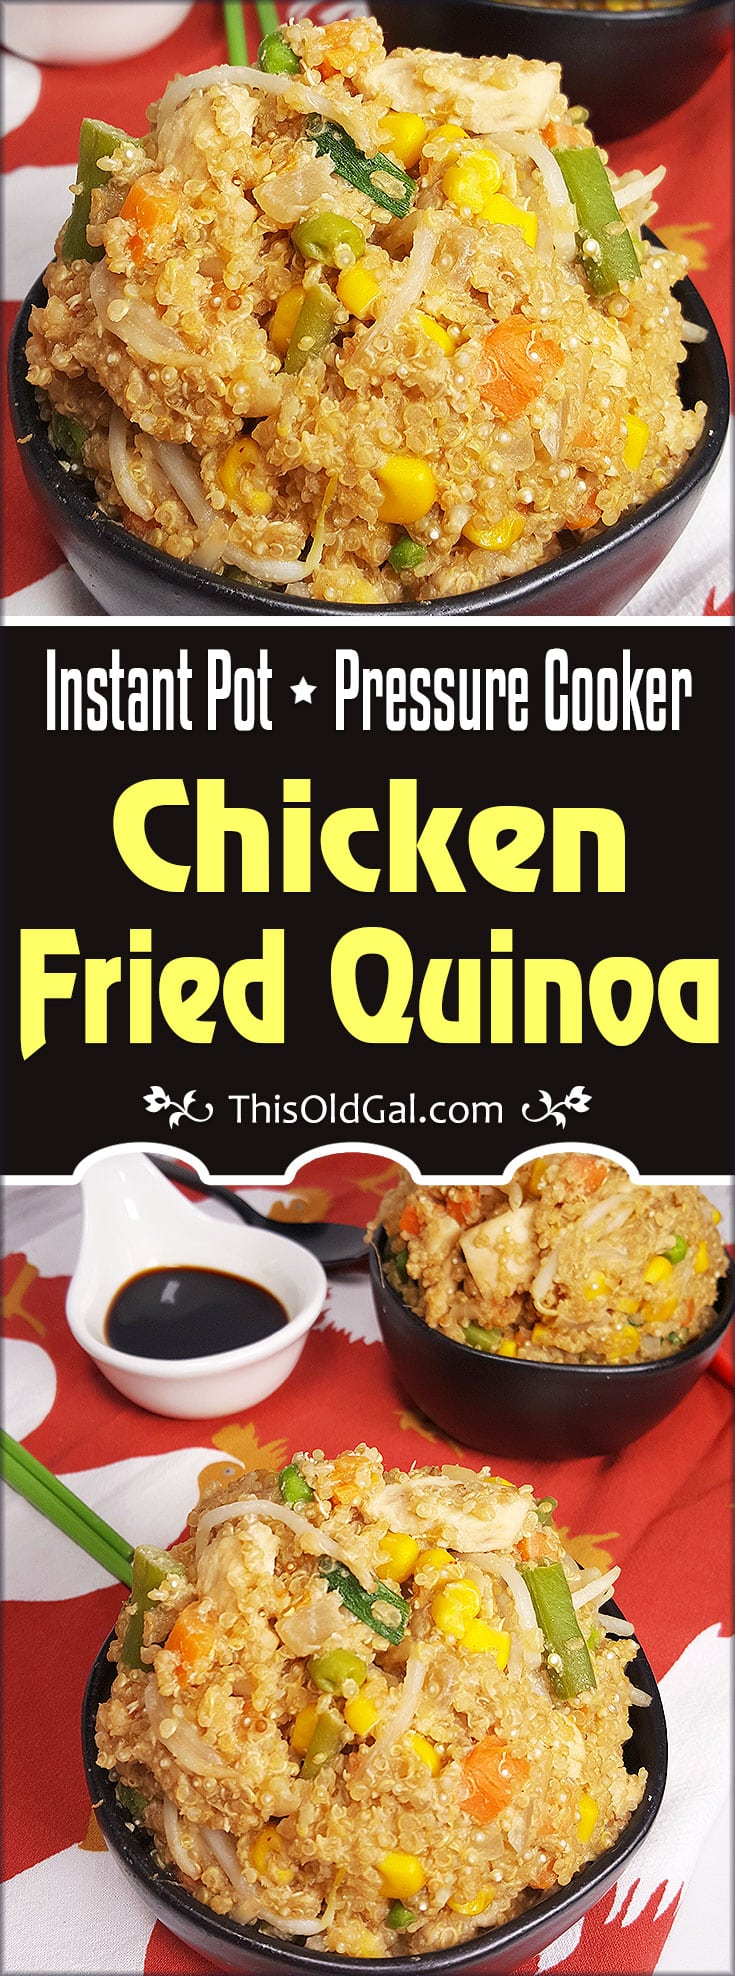 Instant Pot Chicken Fried Quinoa Pressure Cooker